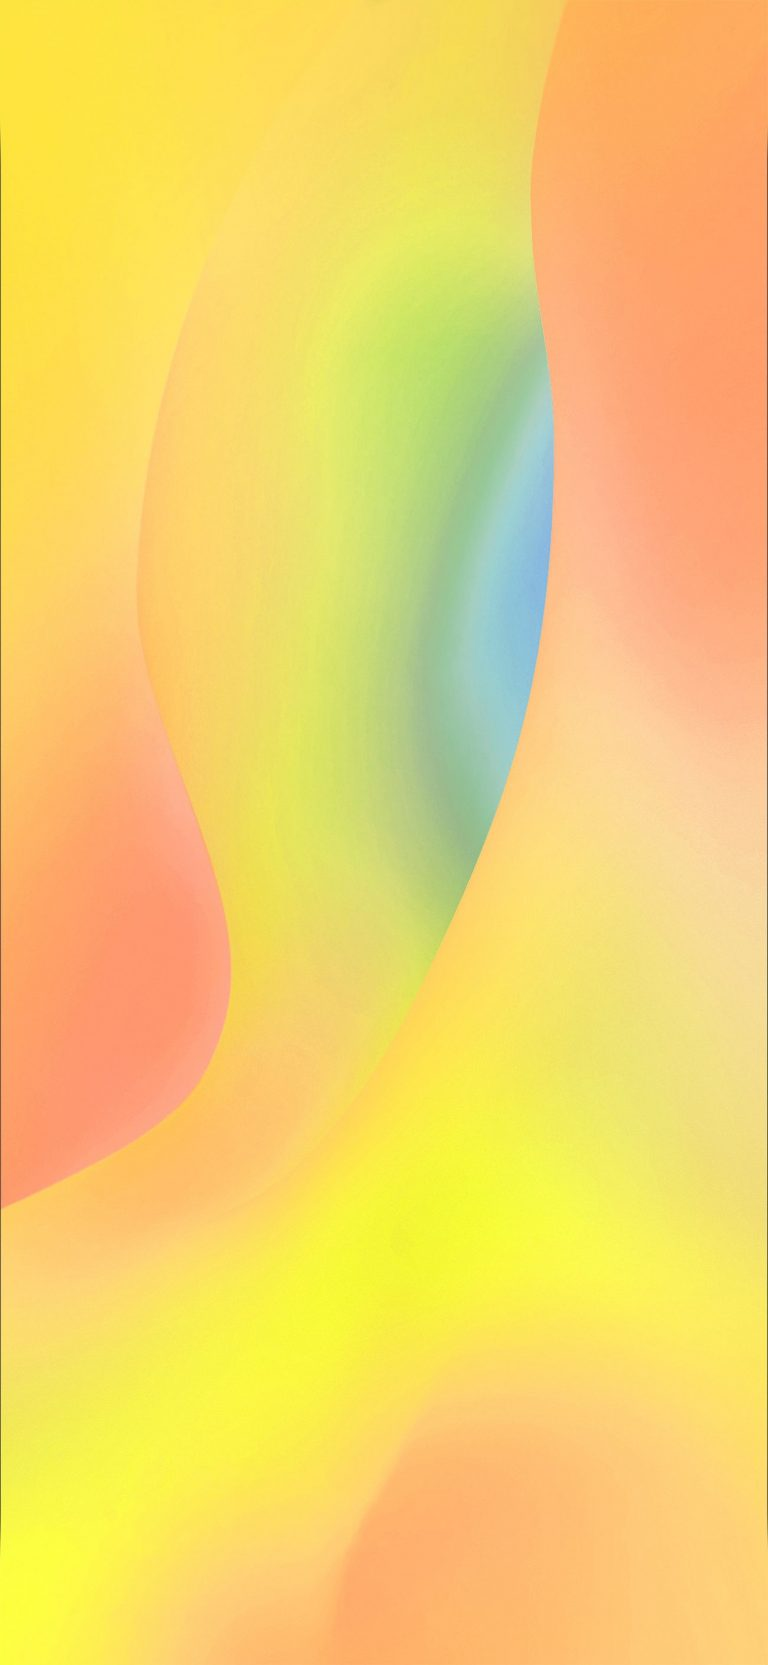 Huawei Nova 3i Stock Wallpaper 006 1301x2820 768x1665